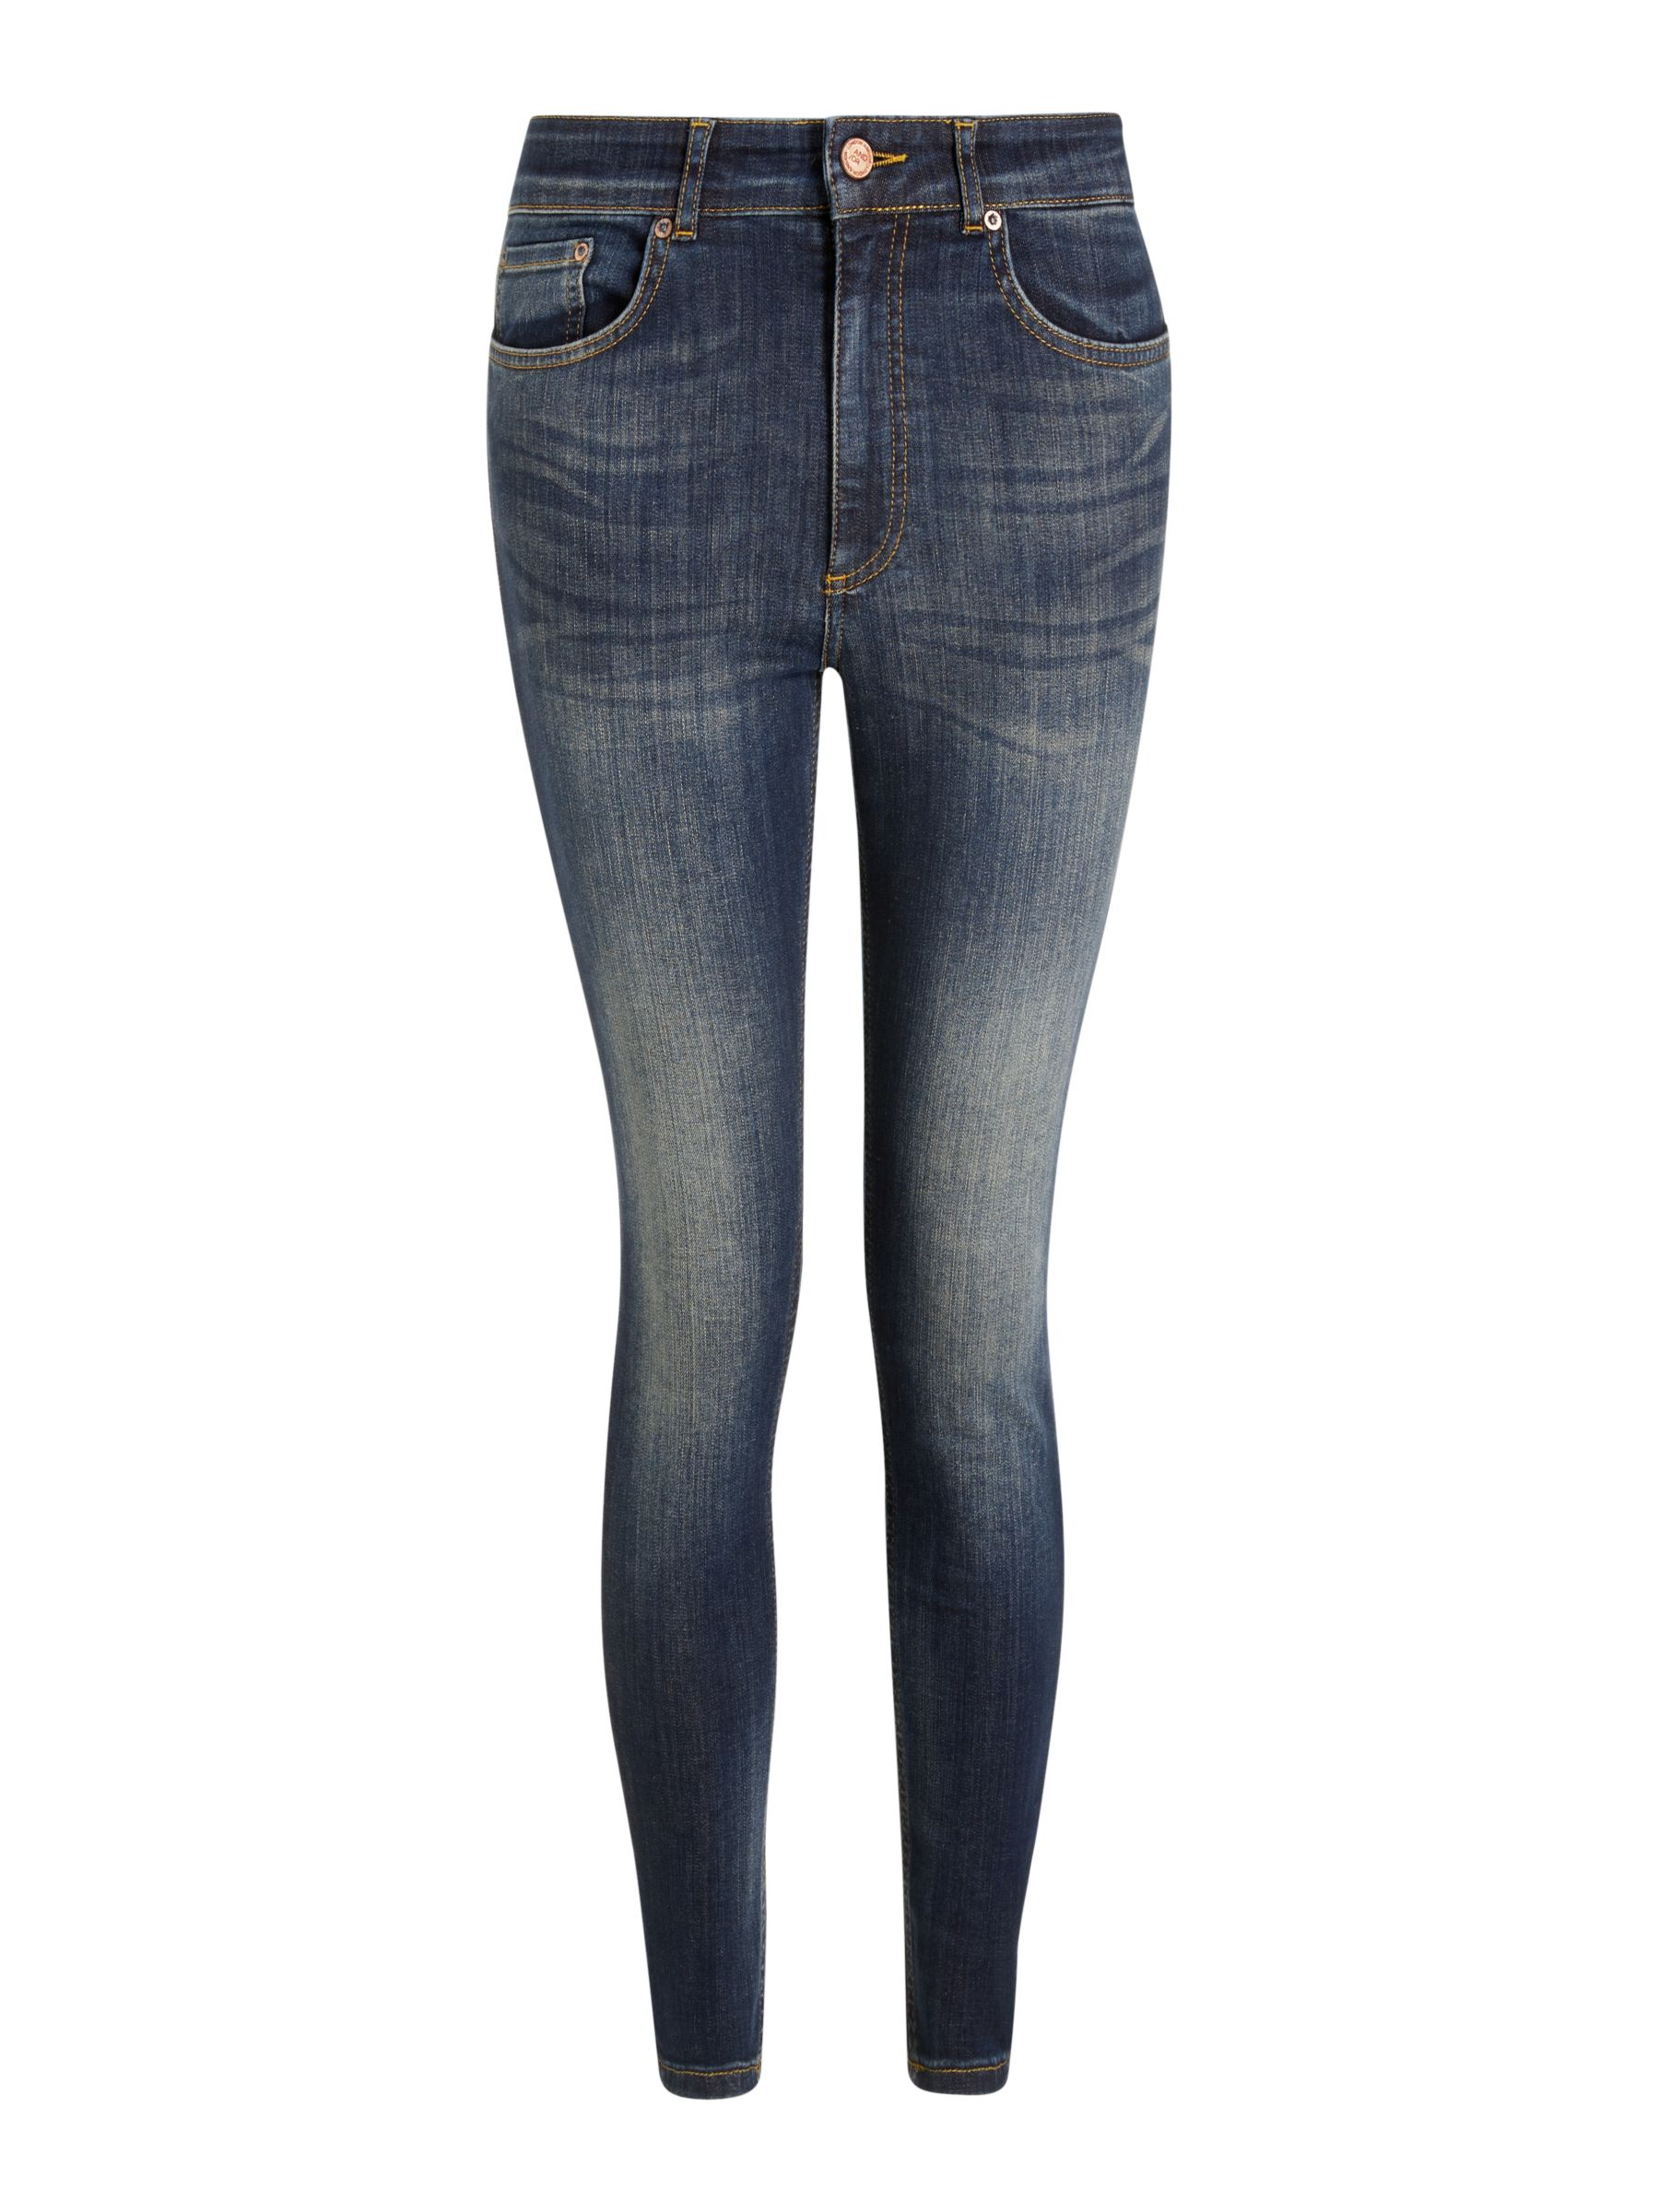 Buy AND/OR Avalon Ankle Grazer Skinny Jeans, Deja Blue, 26R Online at johnlewis.com